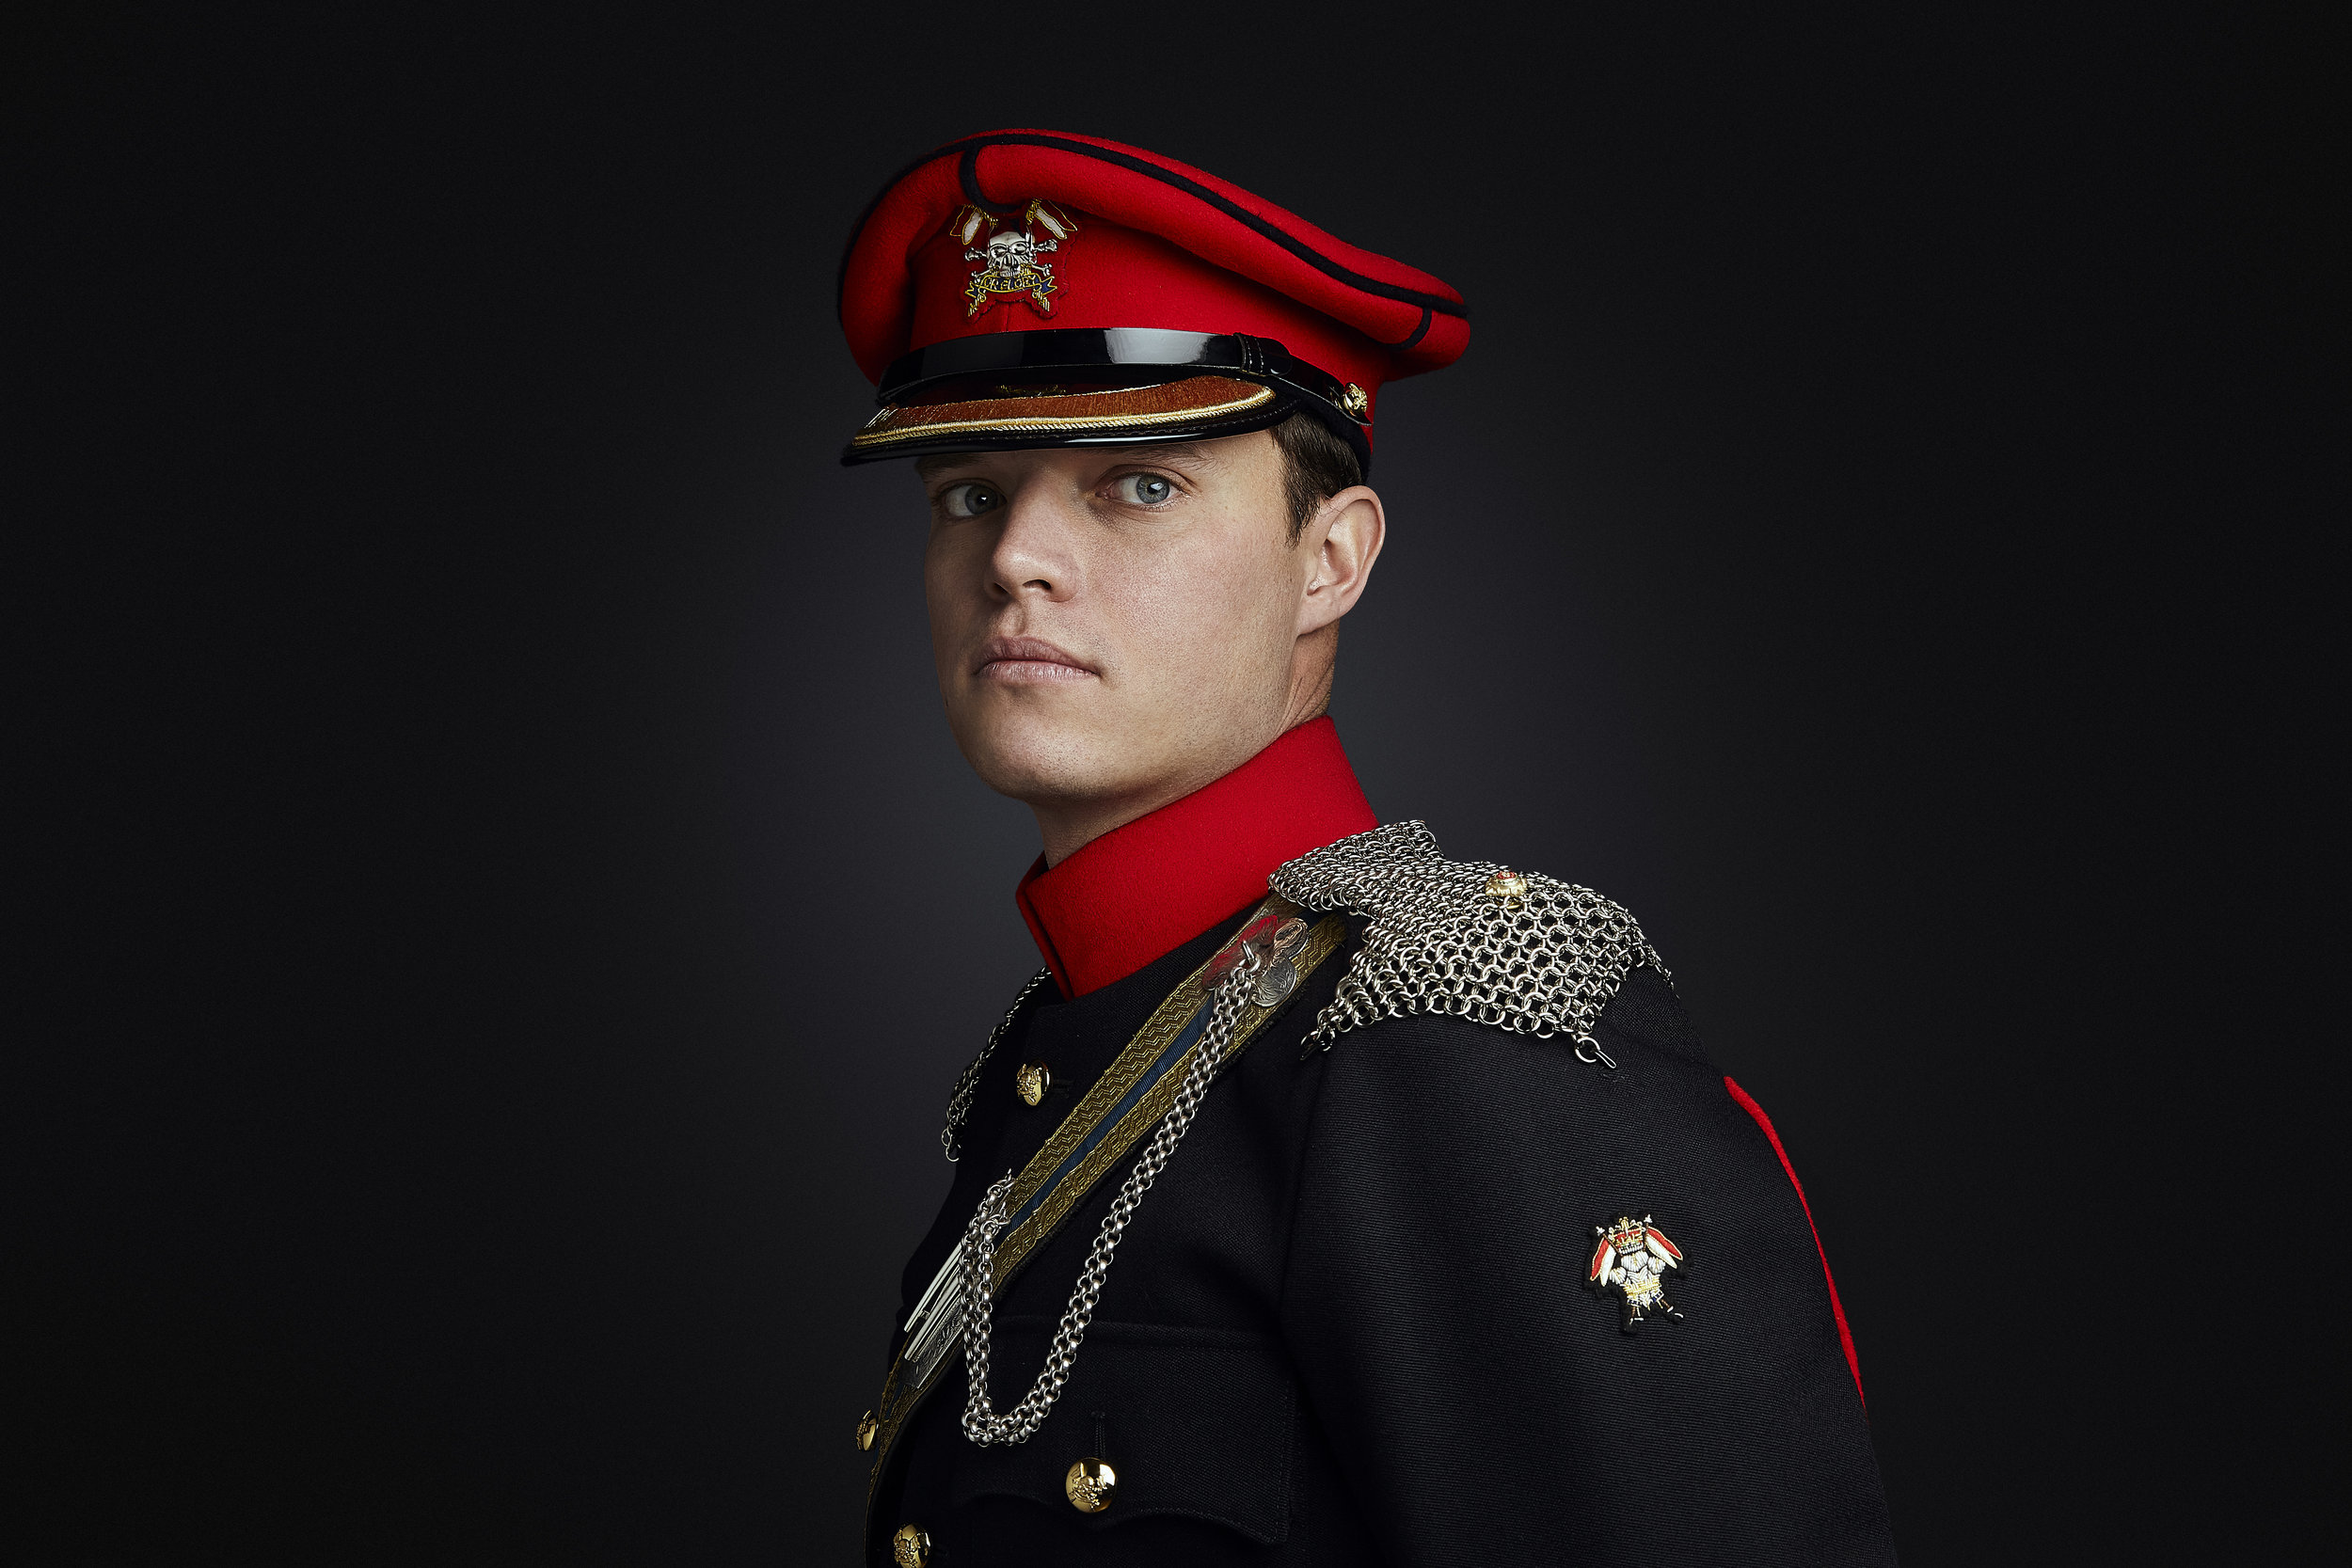 Military Portrait Photographer London, Rory Lewis